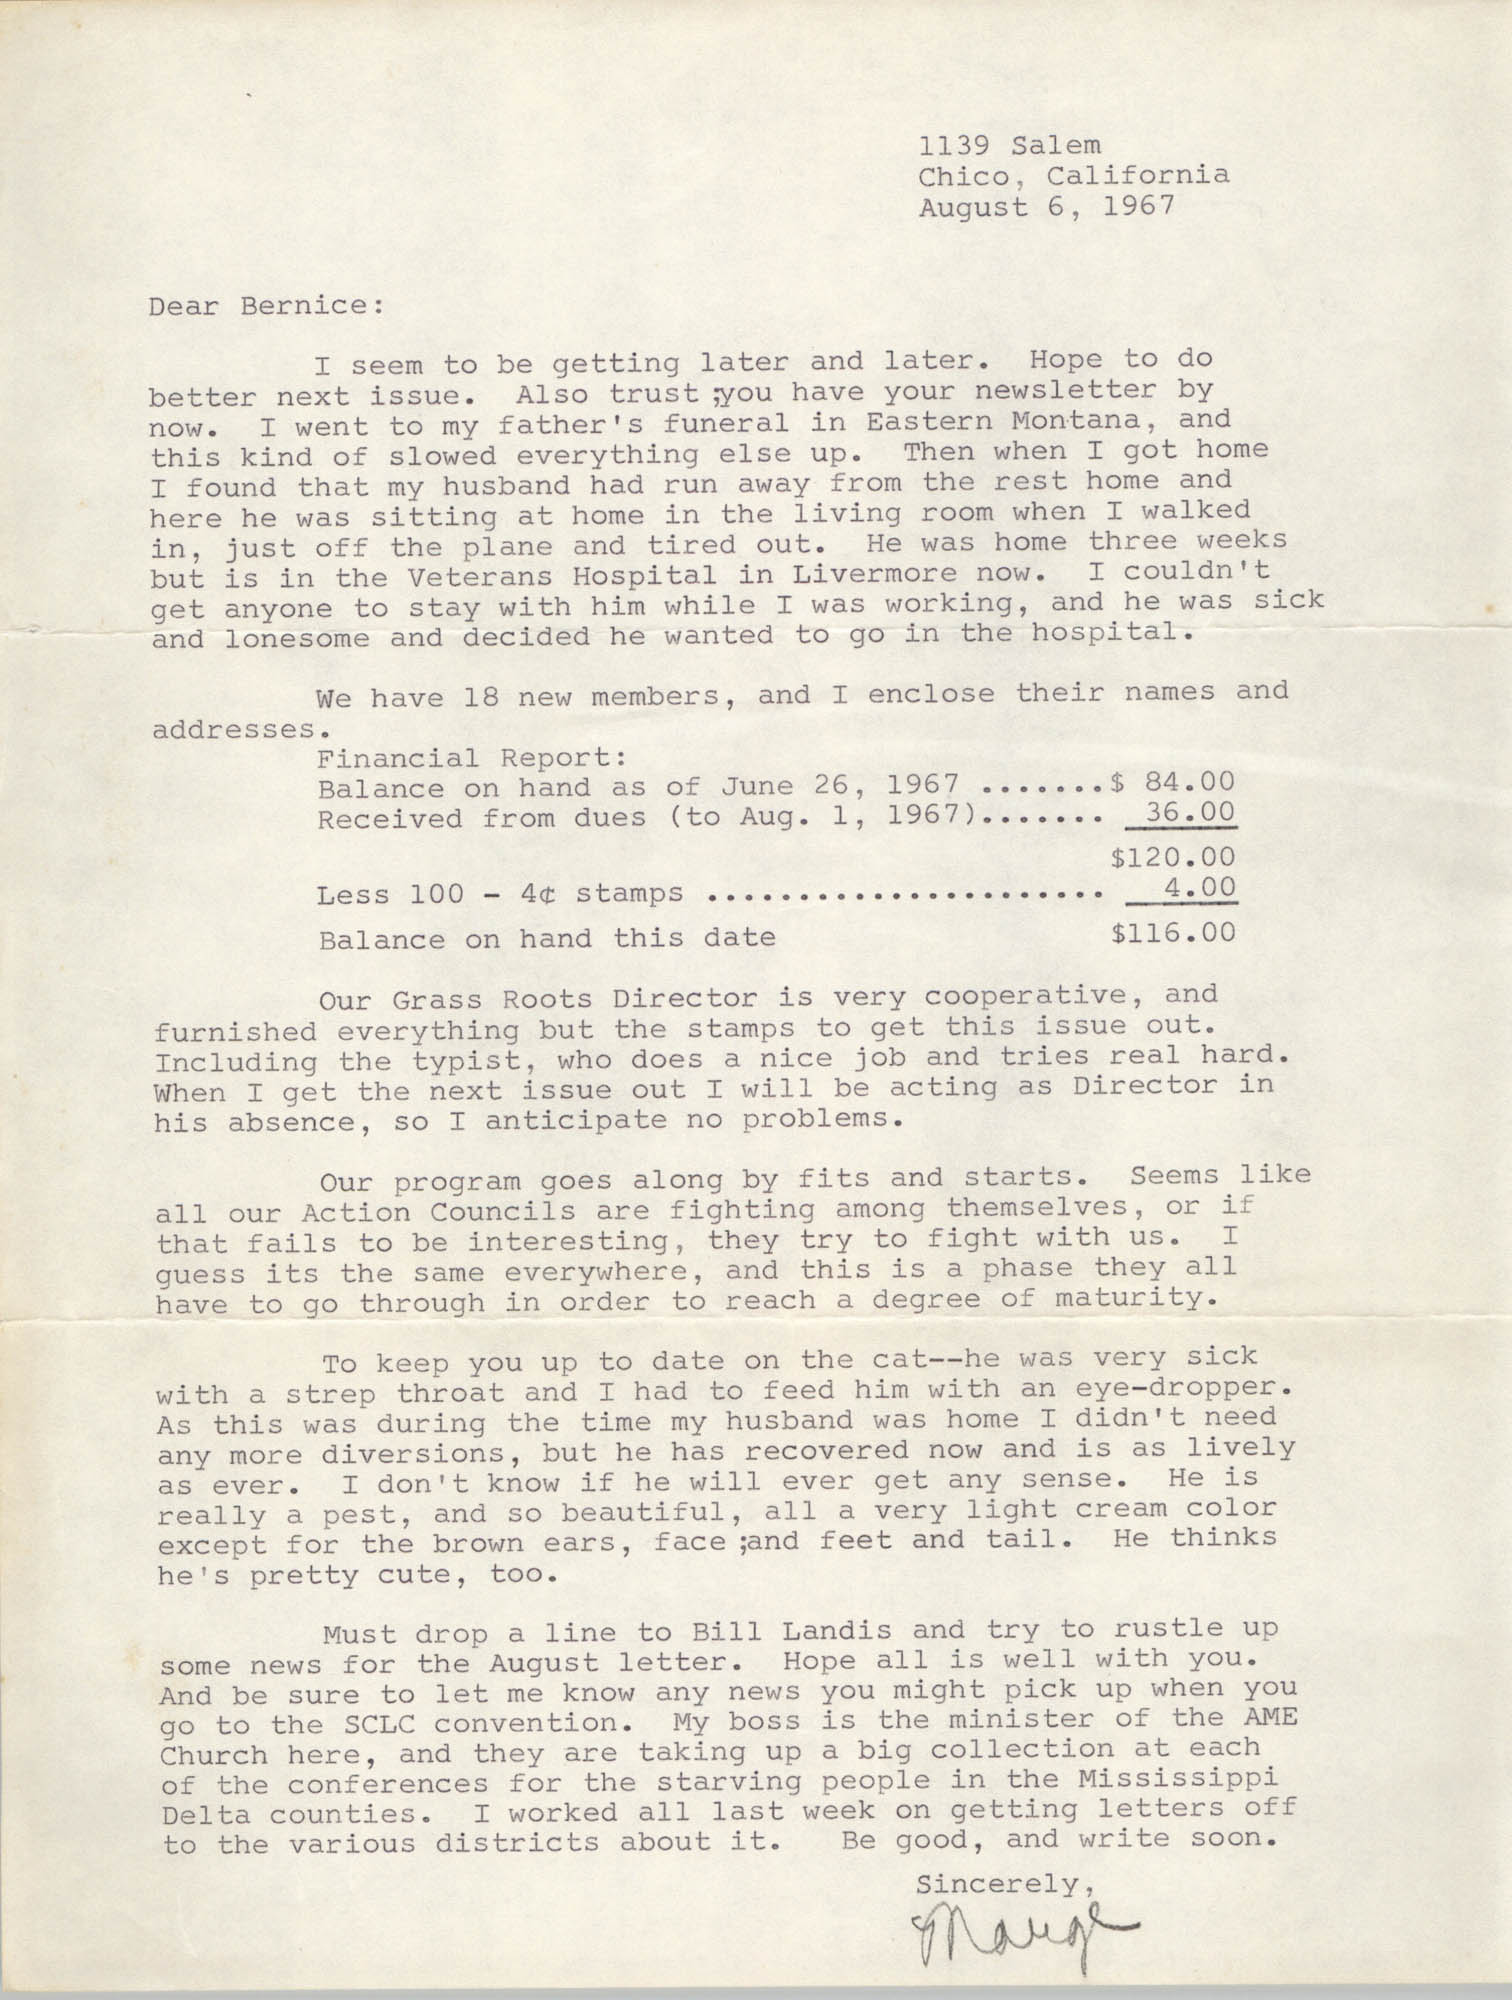 Letter from Margery Ames to Bernice Robinson, August 6, 1967